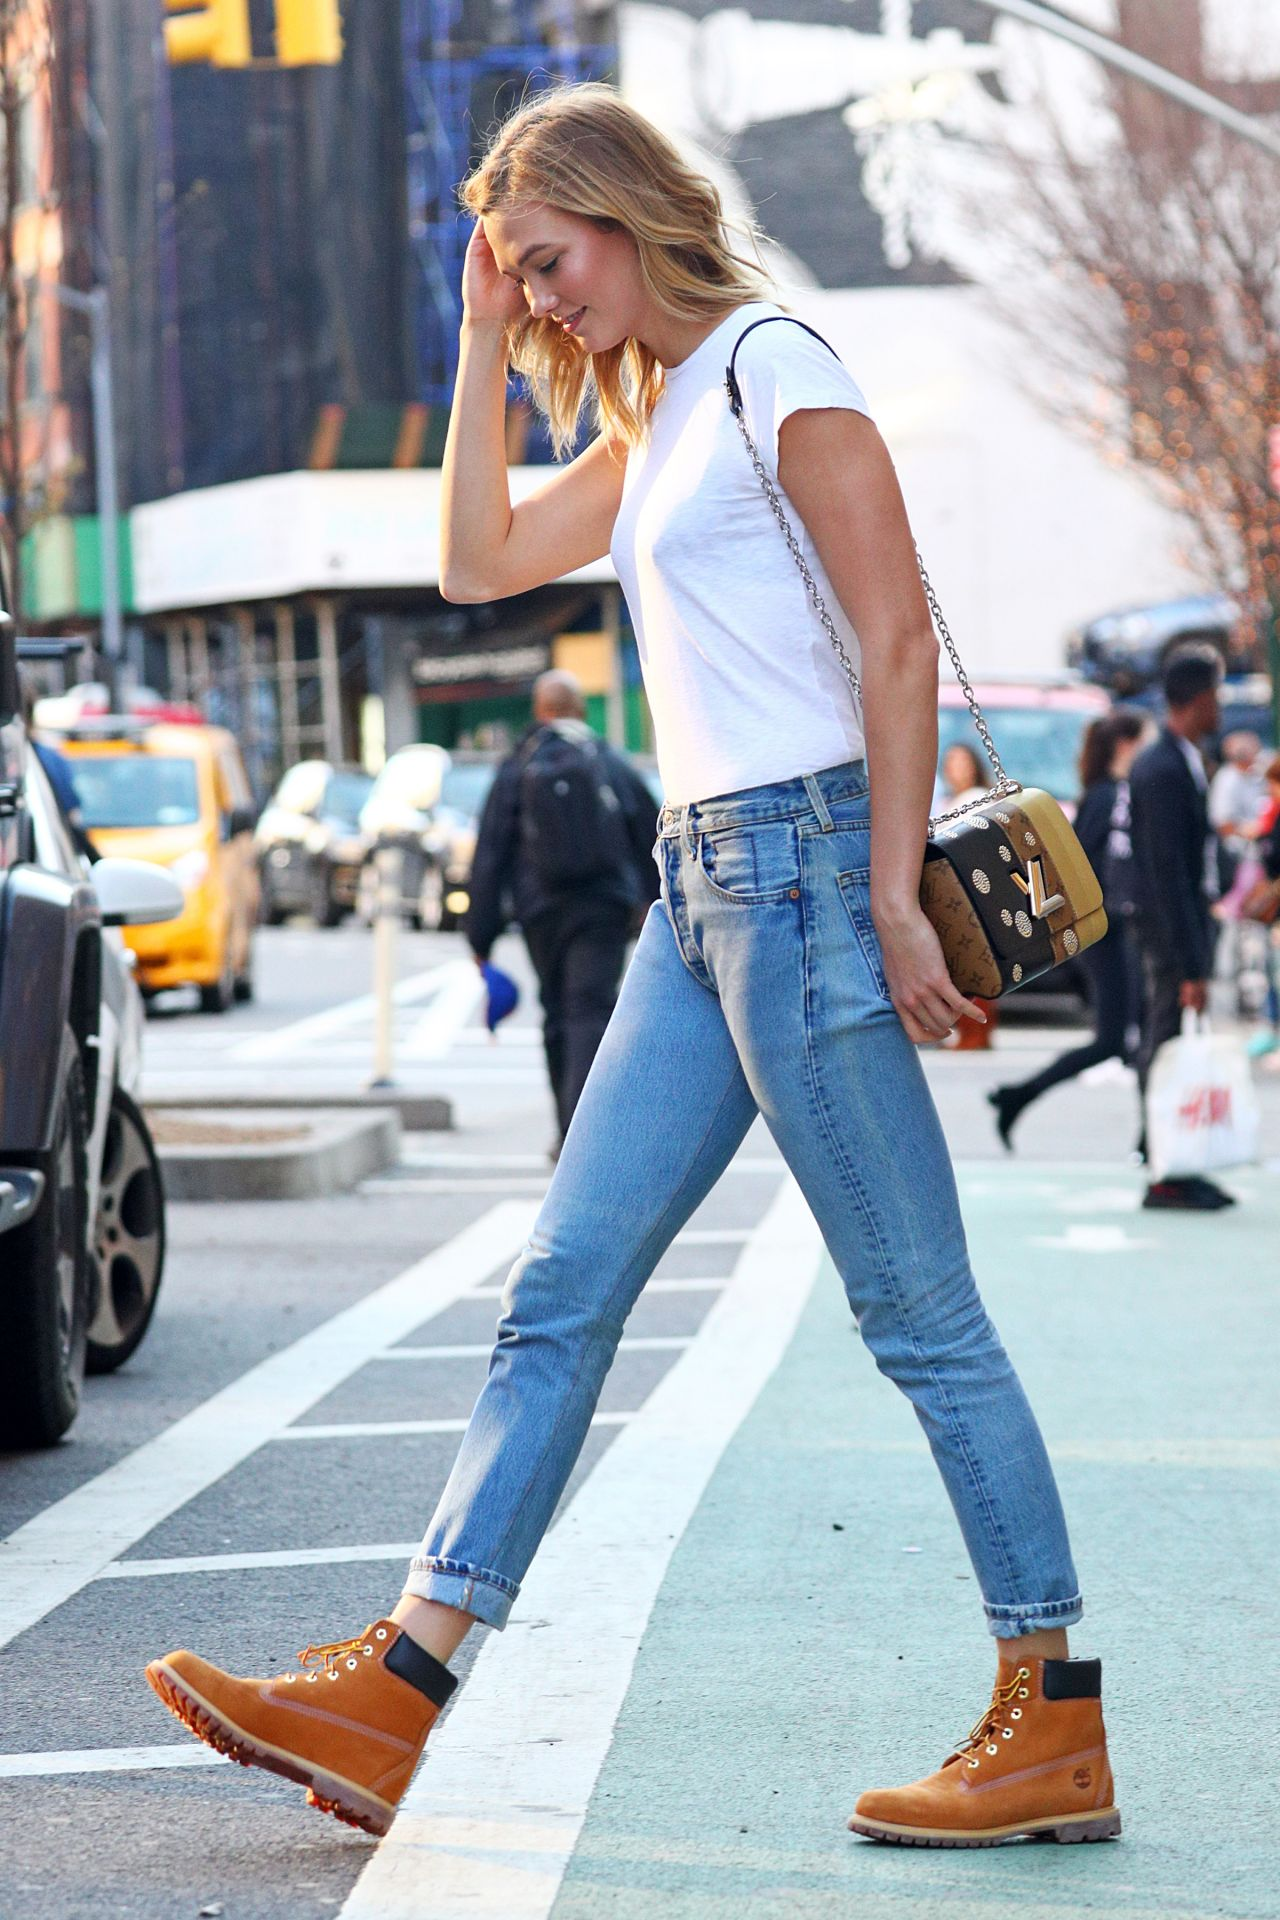 karlie kloss in boyfriend jeans and tan hiking boots 4122017